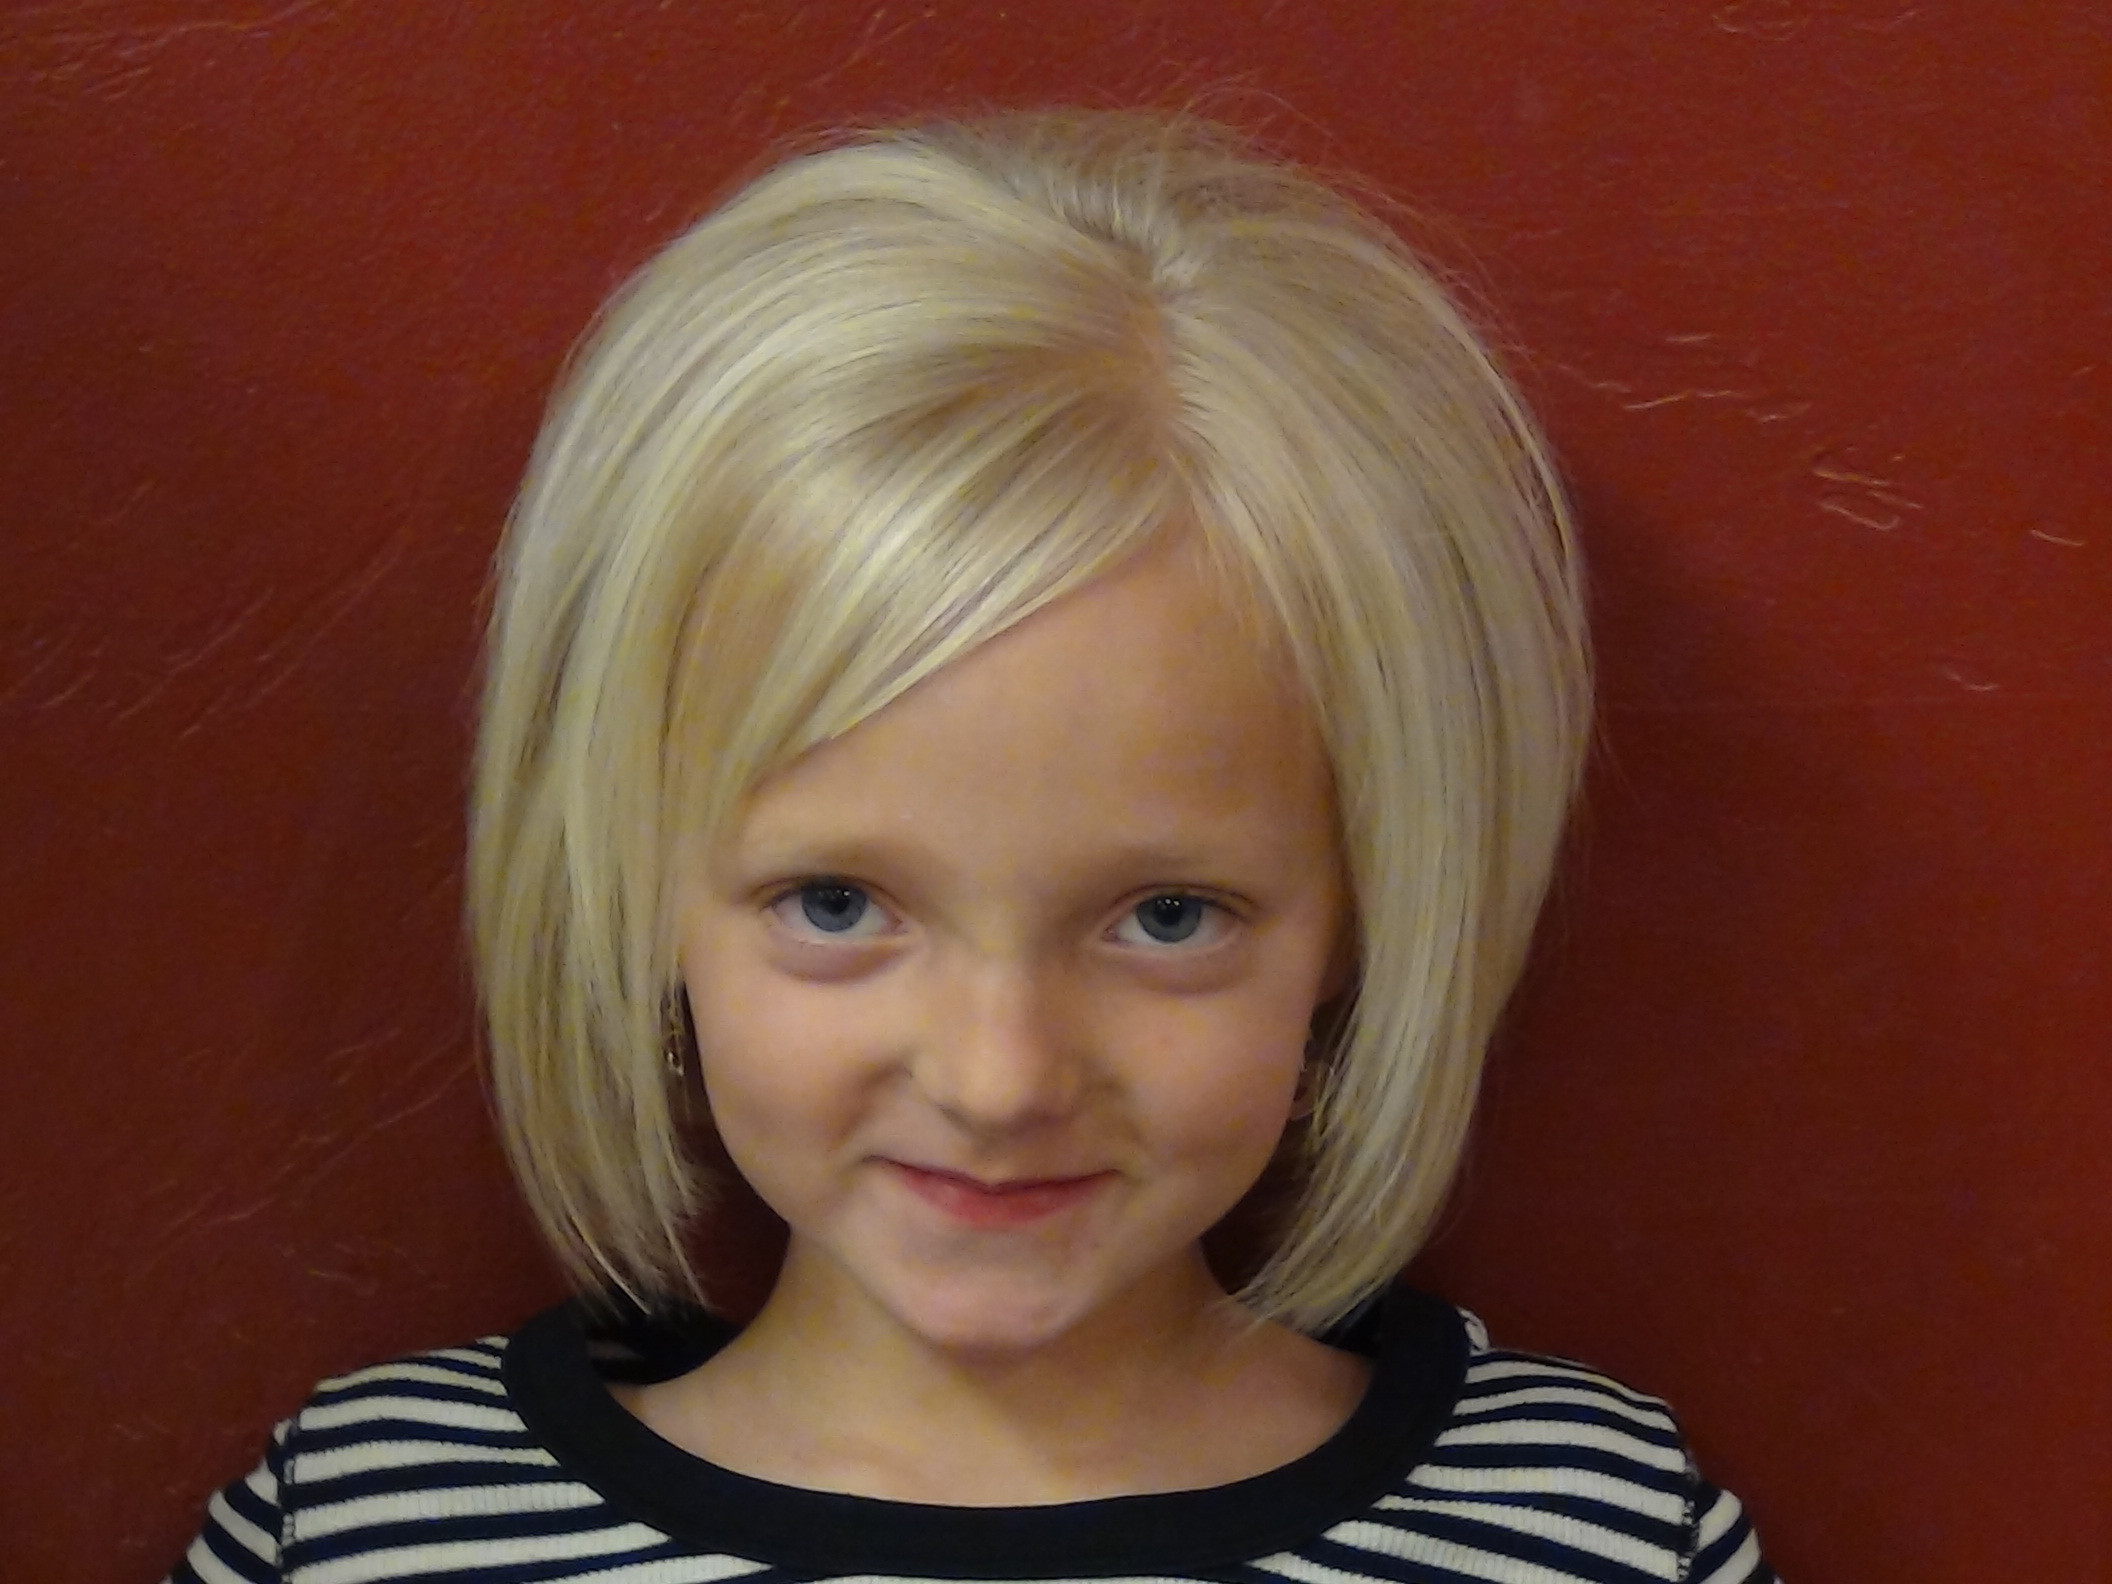 Best ideas about Little Girls Hairstyle . Save or Pin Cut Short Style into Little Girls Hair and Style Now.